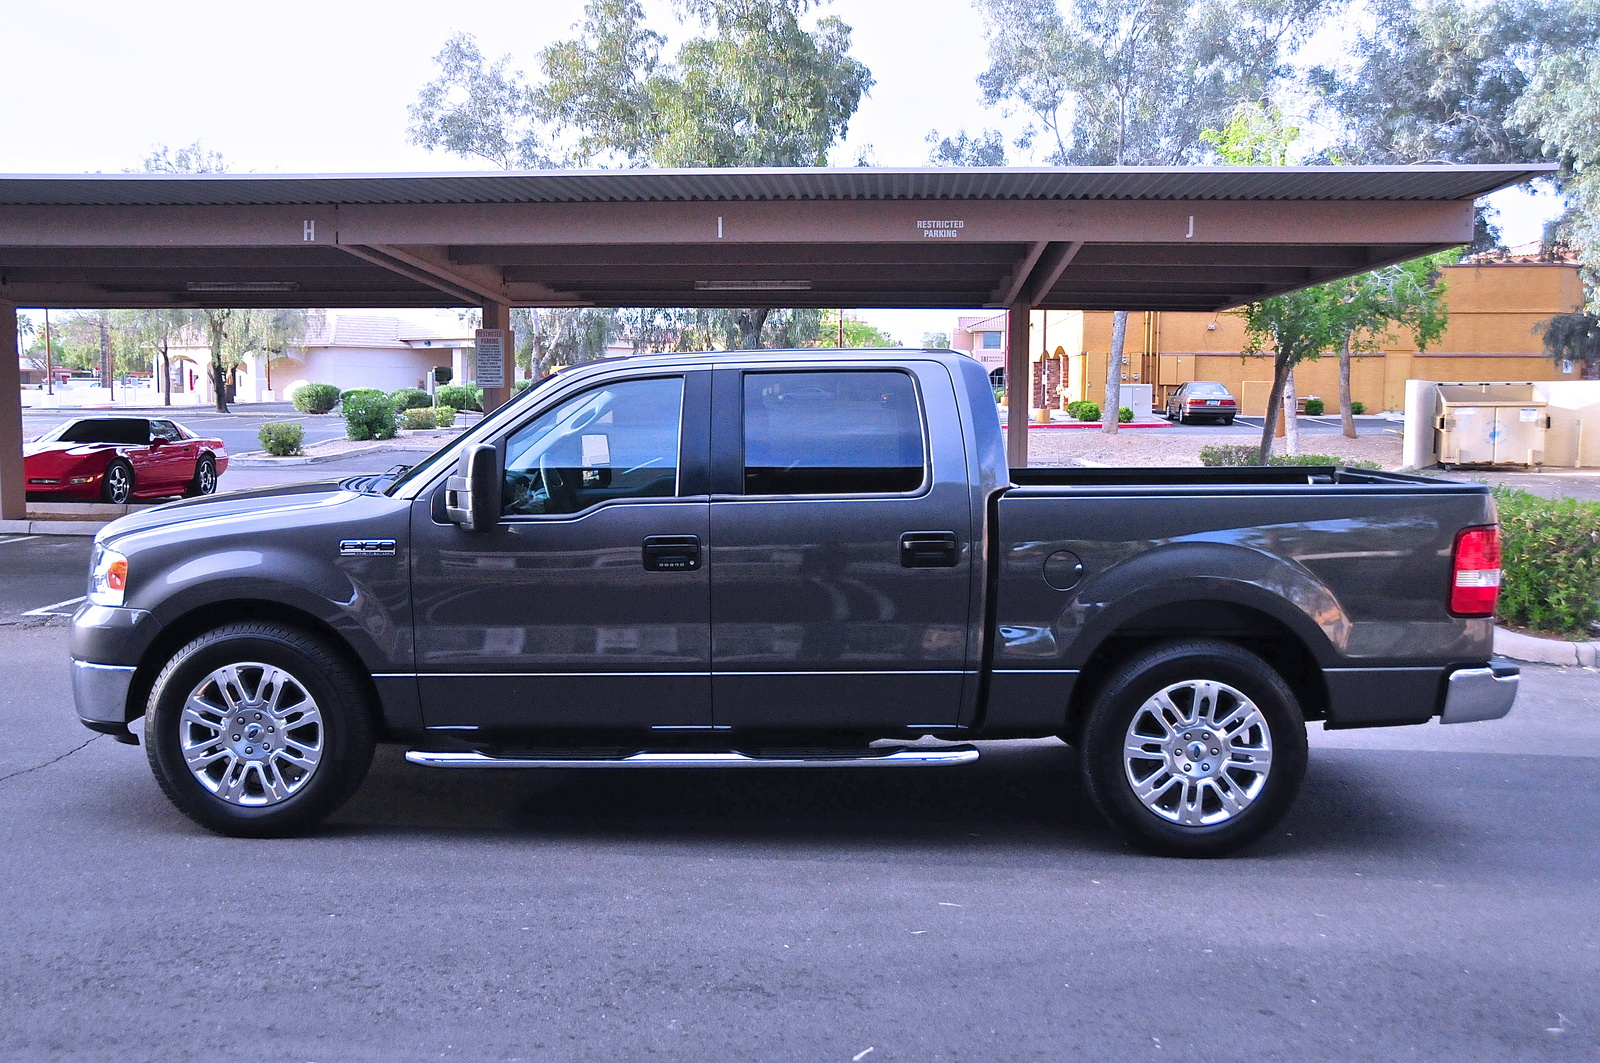 2008 Ford F-150 - Exterior Pictures